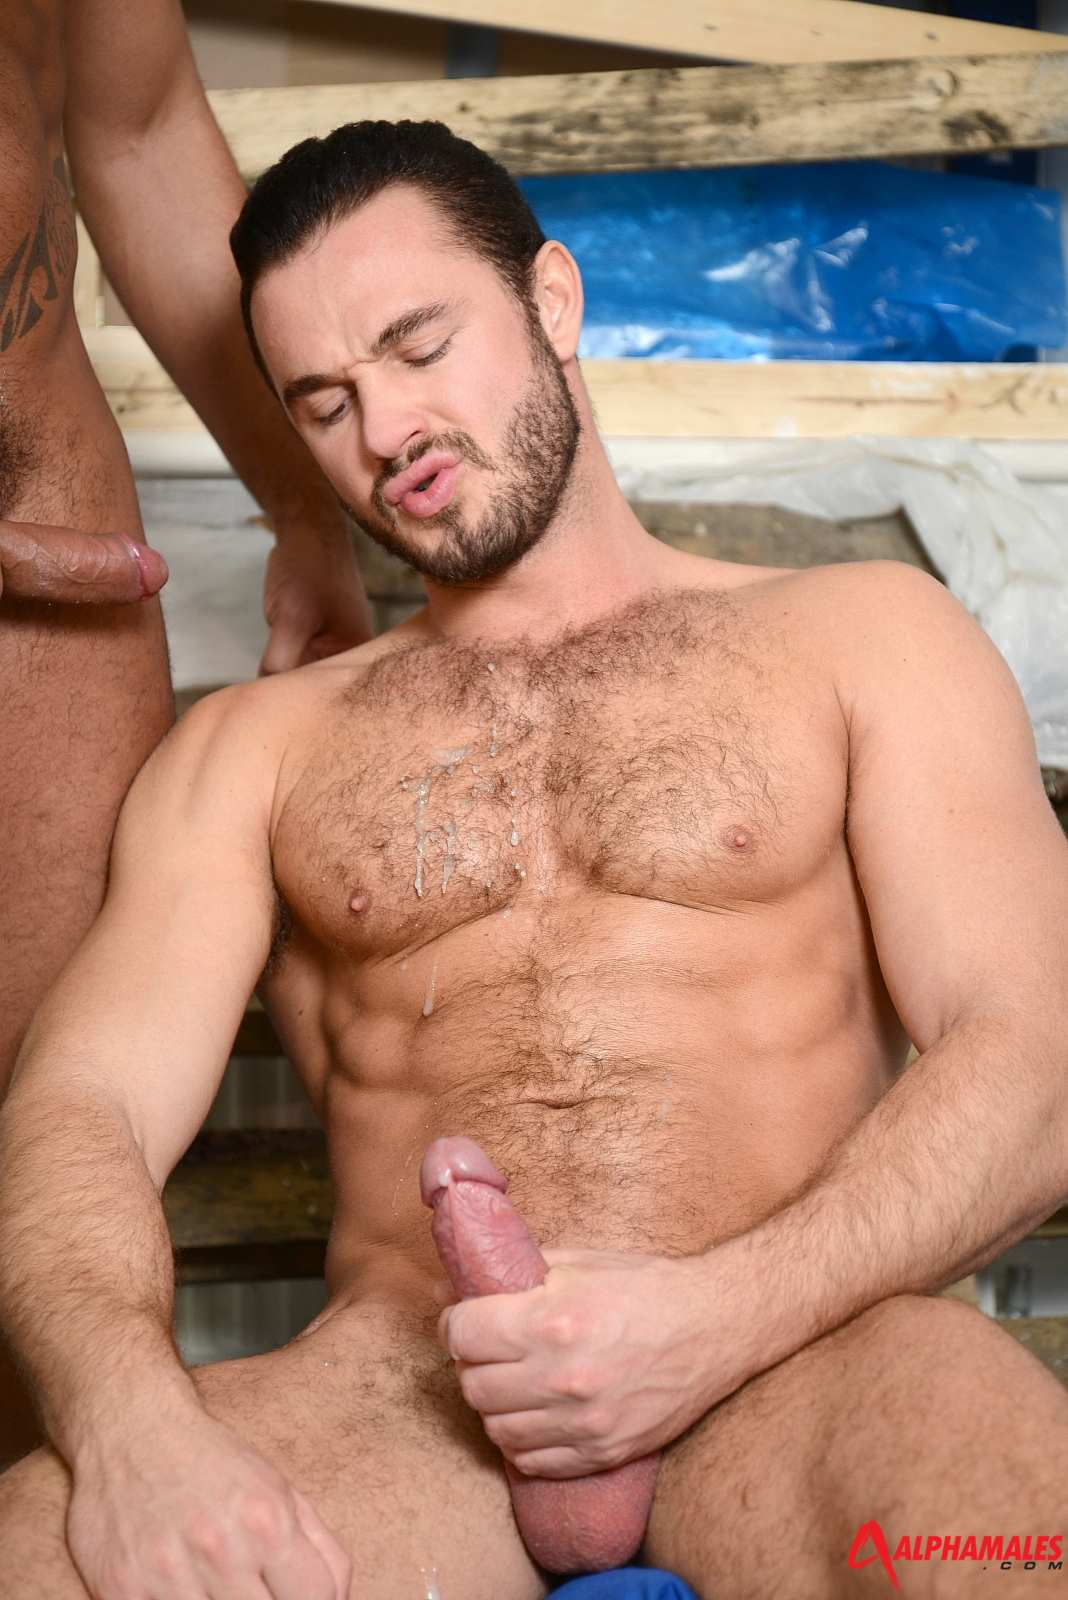 AlphaMales-Jessy-Ares-and-Tiko-Masculine-Men-Fucking-Amateur-Gay-Porn-10 Amateur Masculine Blue Collar Muscle Hairy Men Fucking